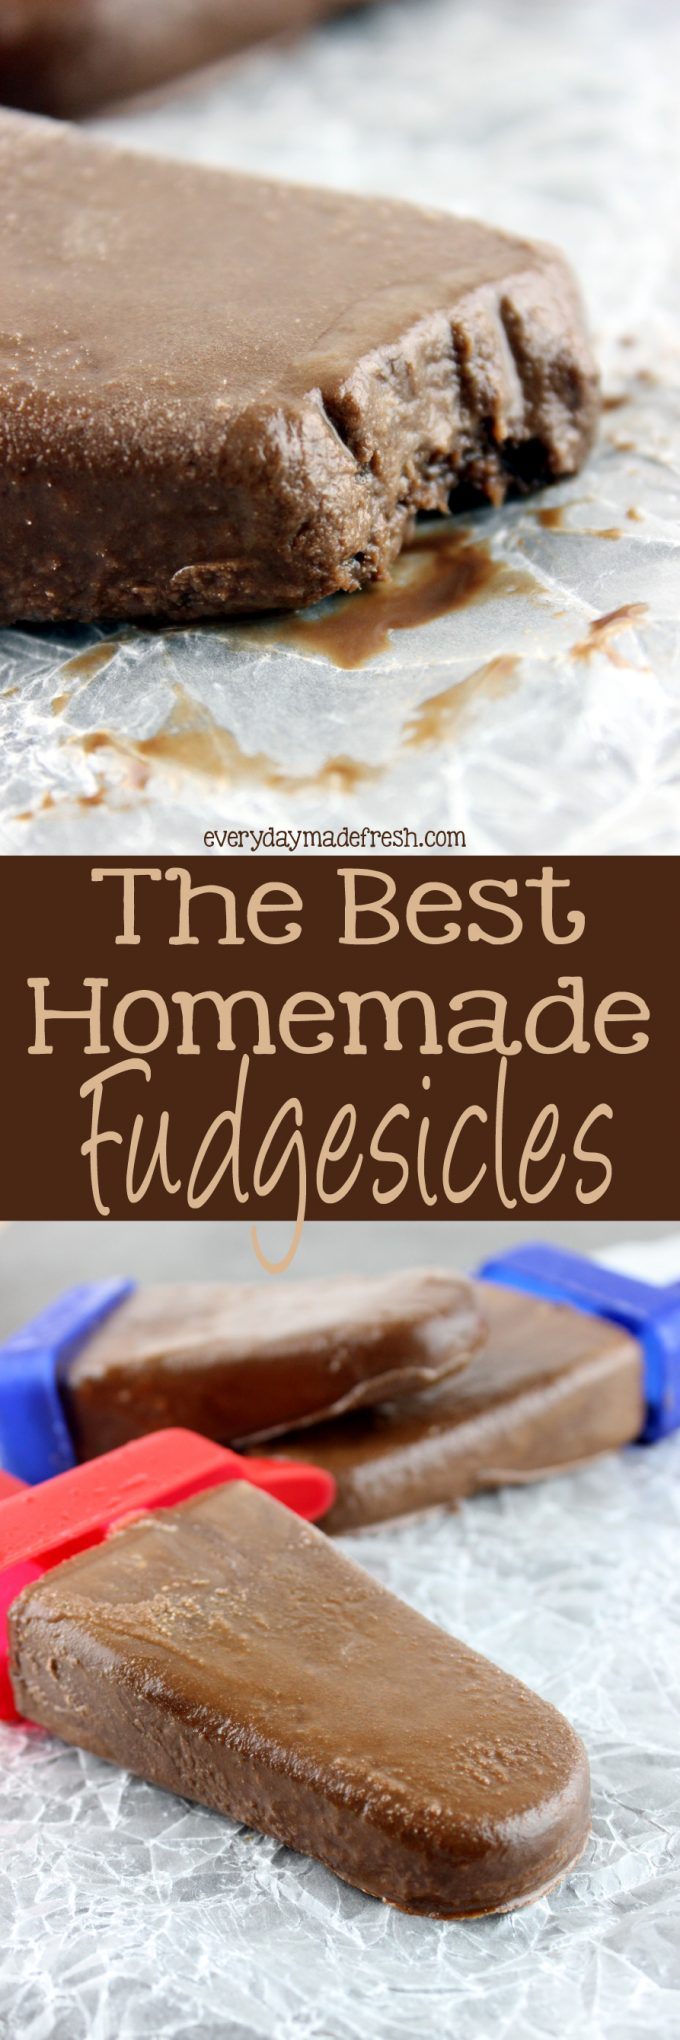 Chocolate fudgey goodness in the form of our summer favorite, popsicles! The Best Homemade Fudgesicles are made with 4 ingredients, and you will want to always have them in the freezer! | EverydayMadeFresh.com